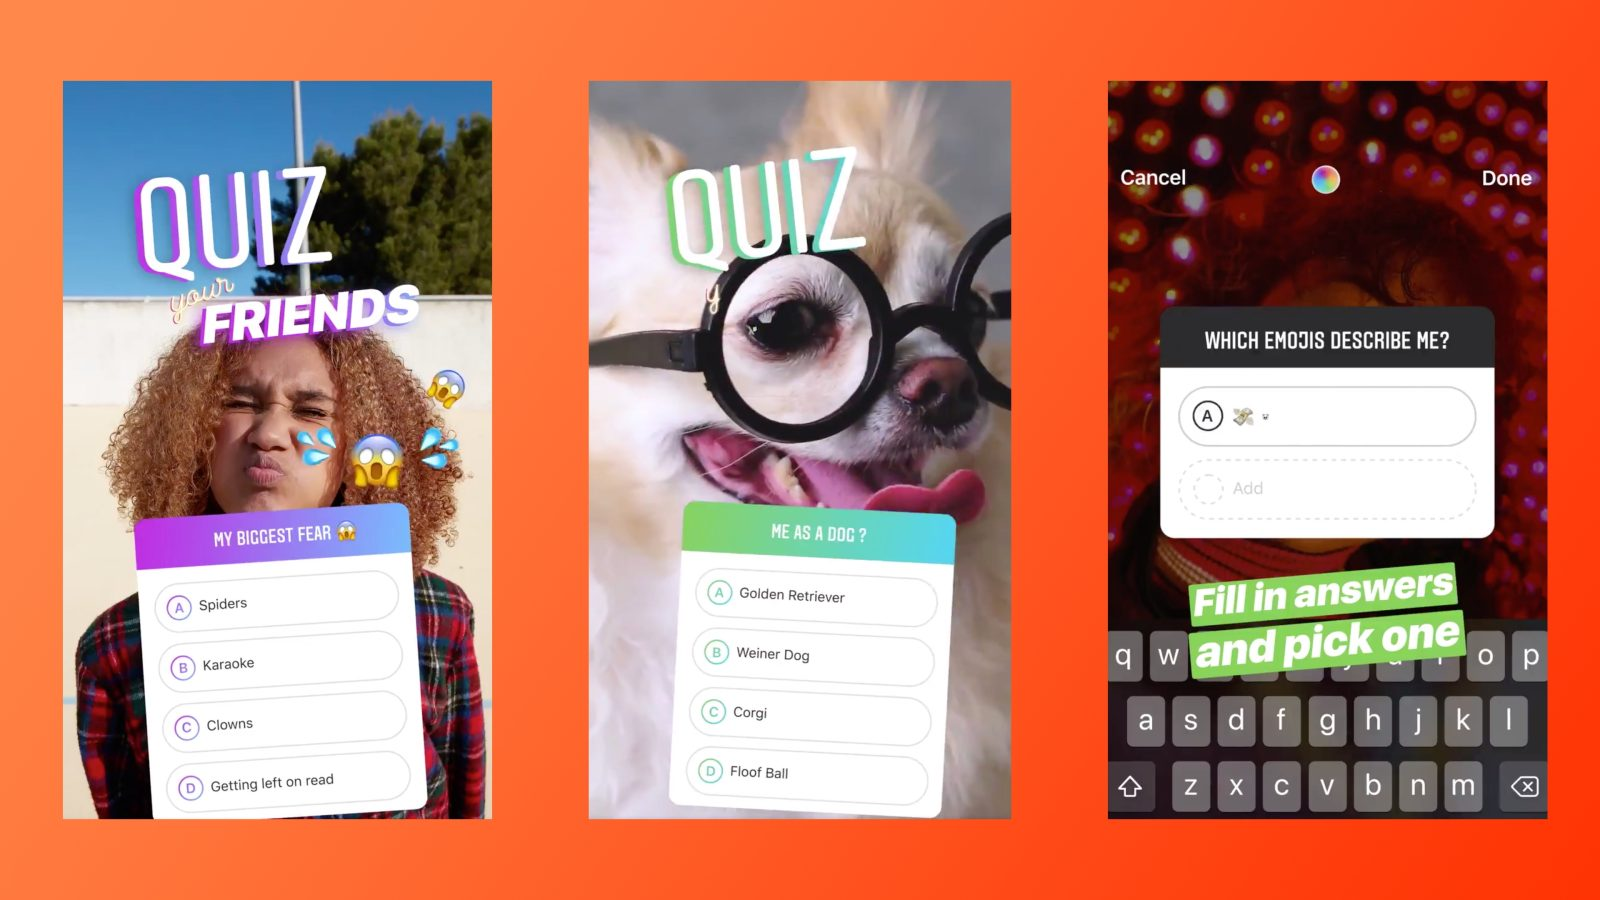 Instagram quiz feature lets you ask multiple choice questions - 9to5Mac